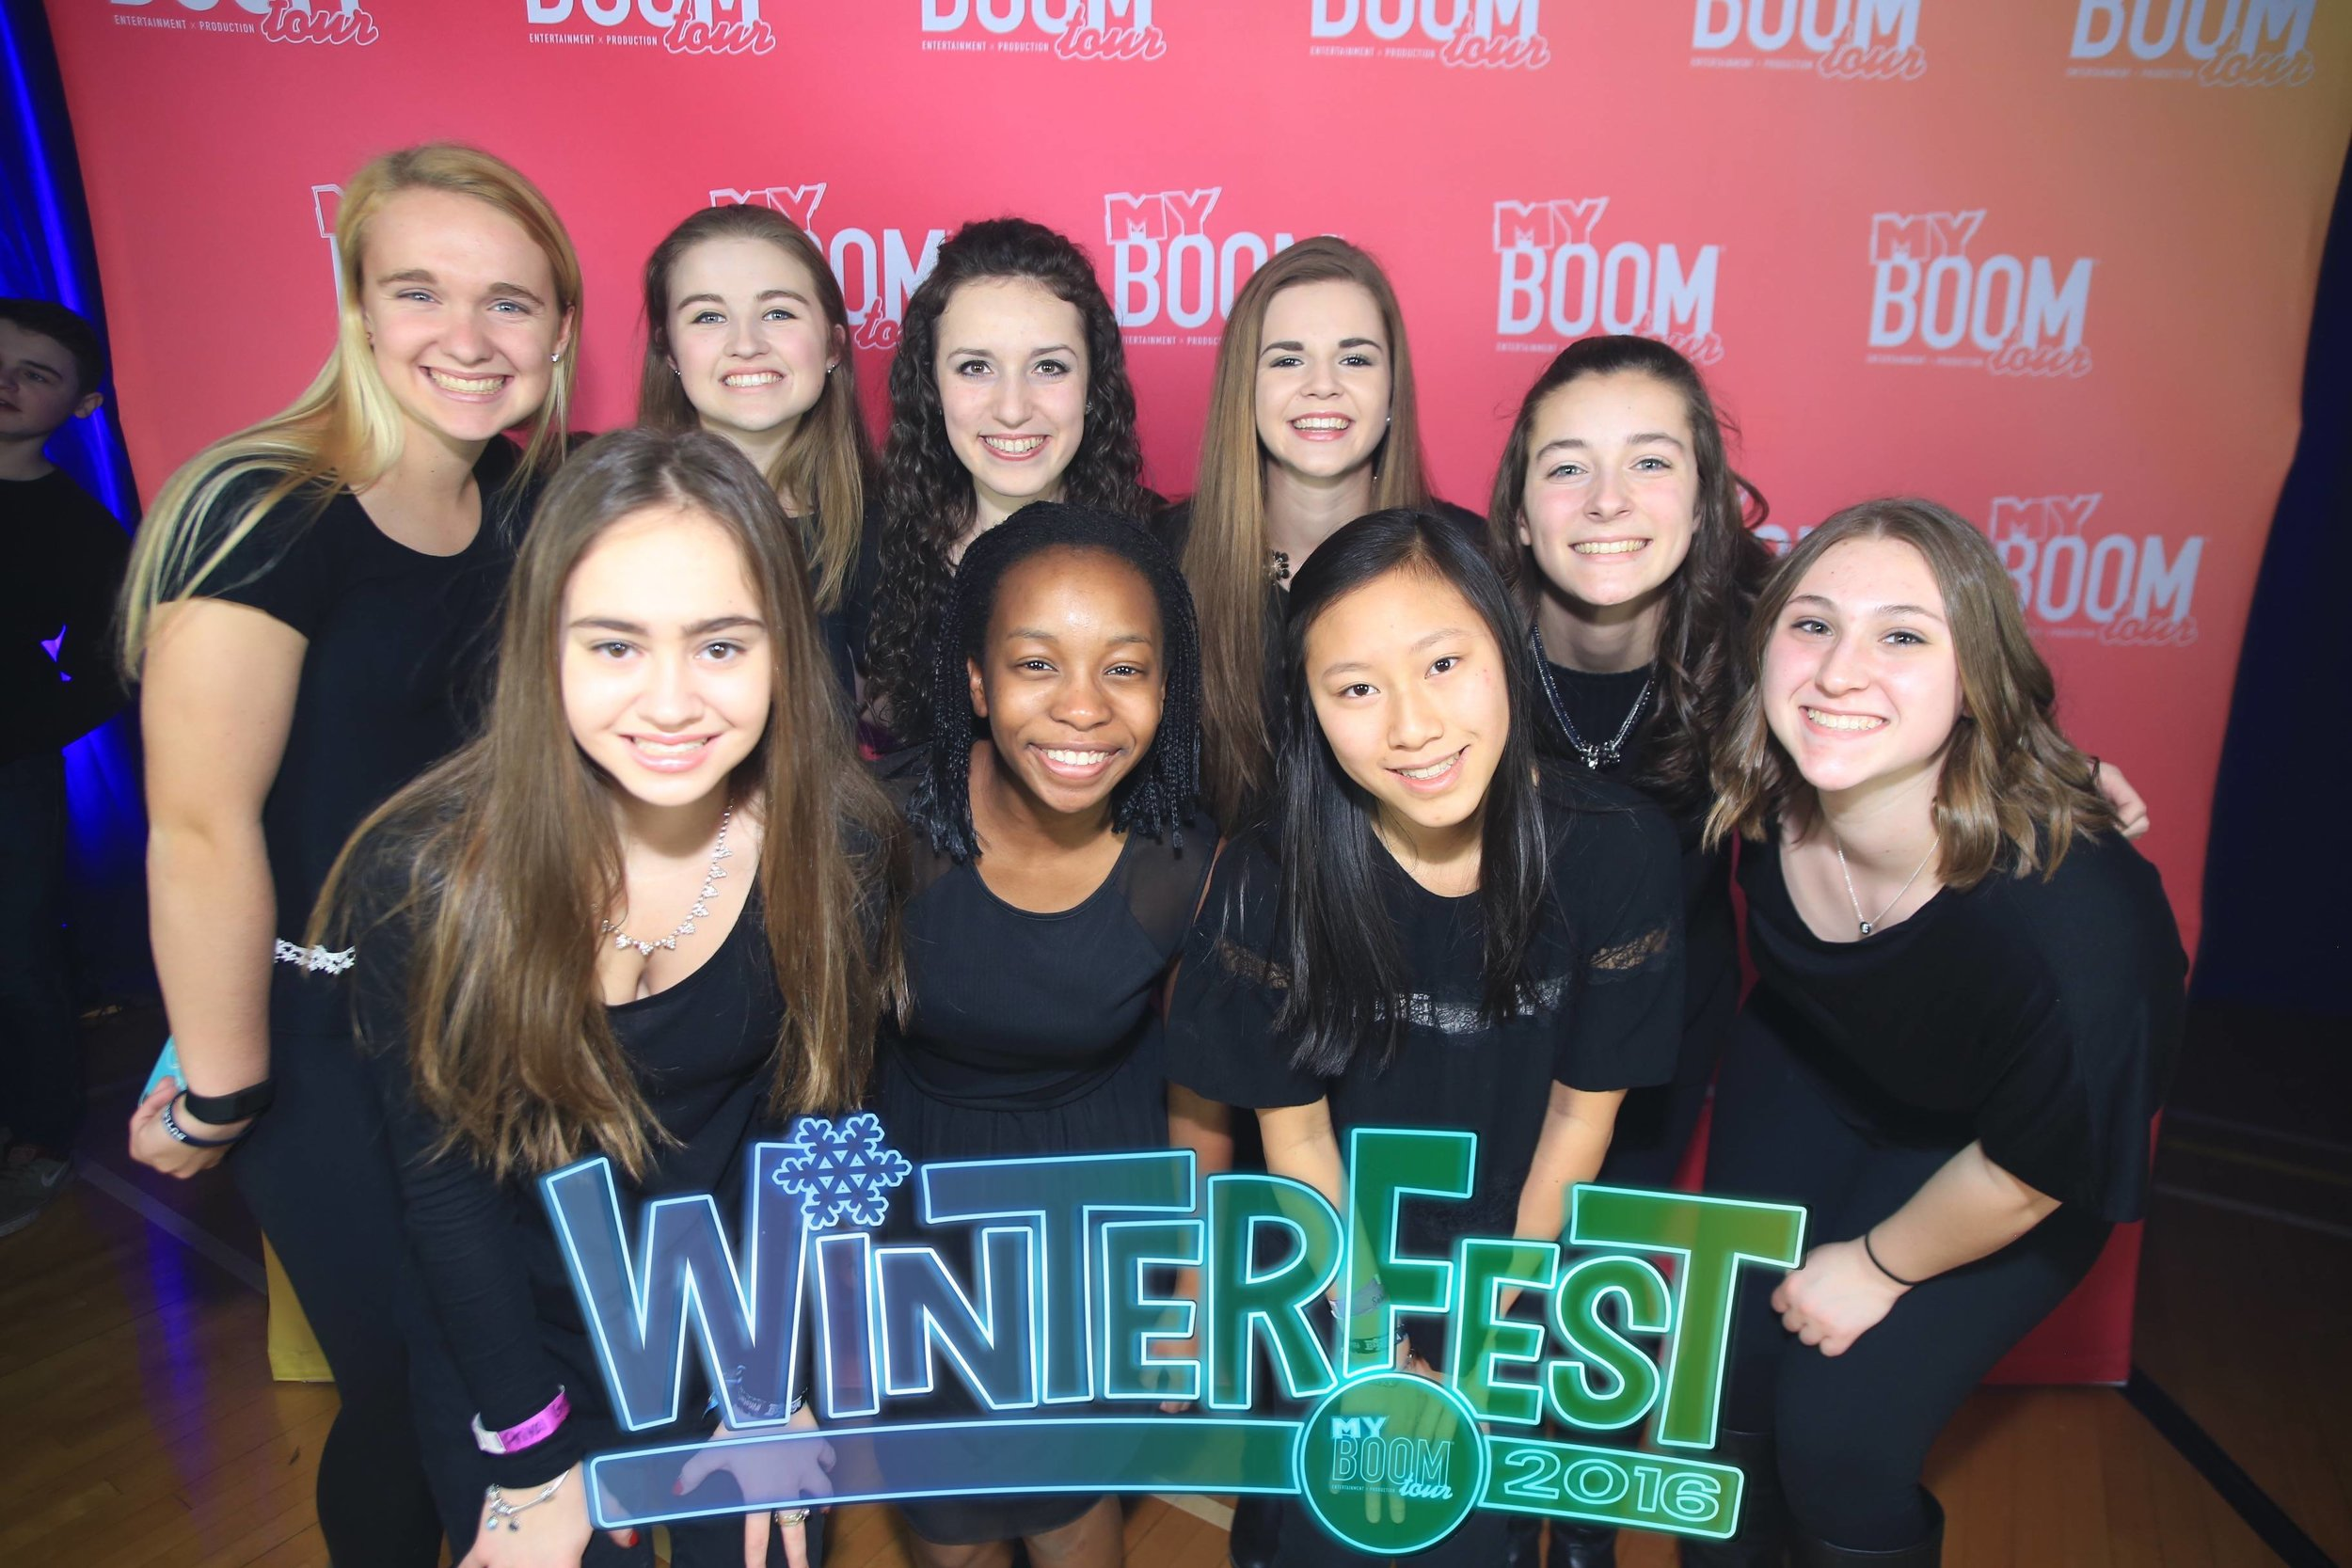 Fremd HS WinterFest16 Photo Booth Lunch Pics169.JPG